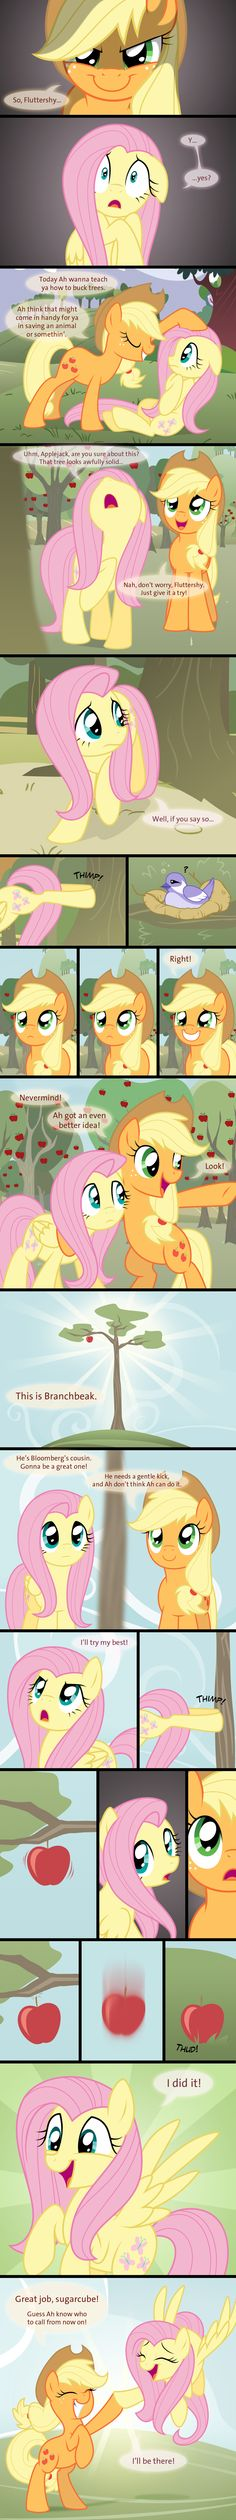 Aww, Applejack's so sweet :) <3